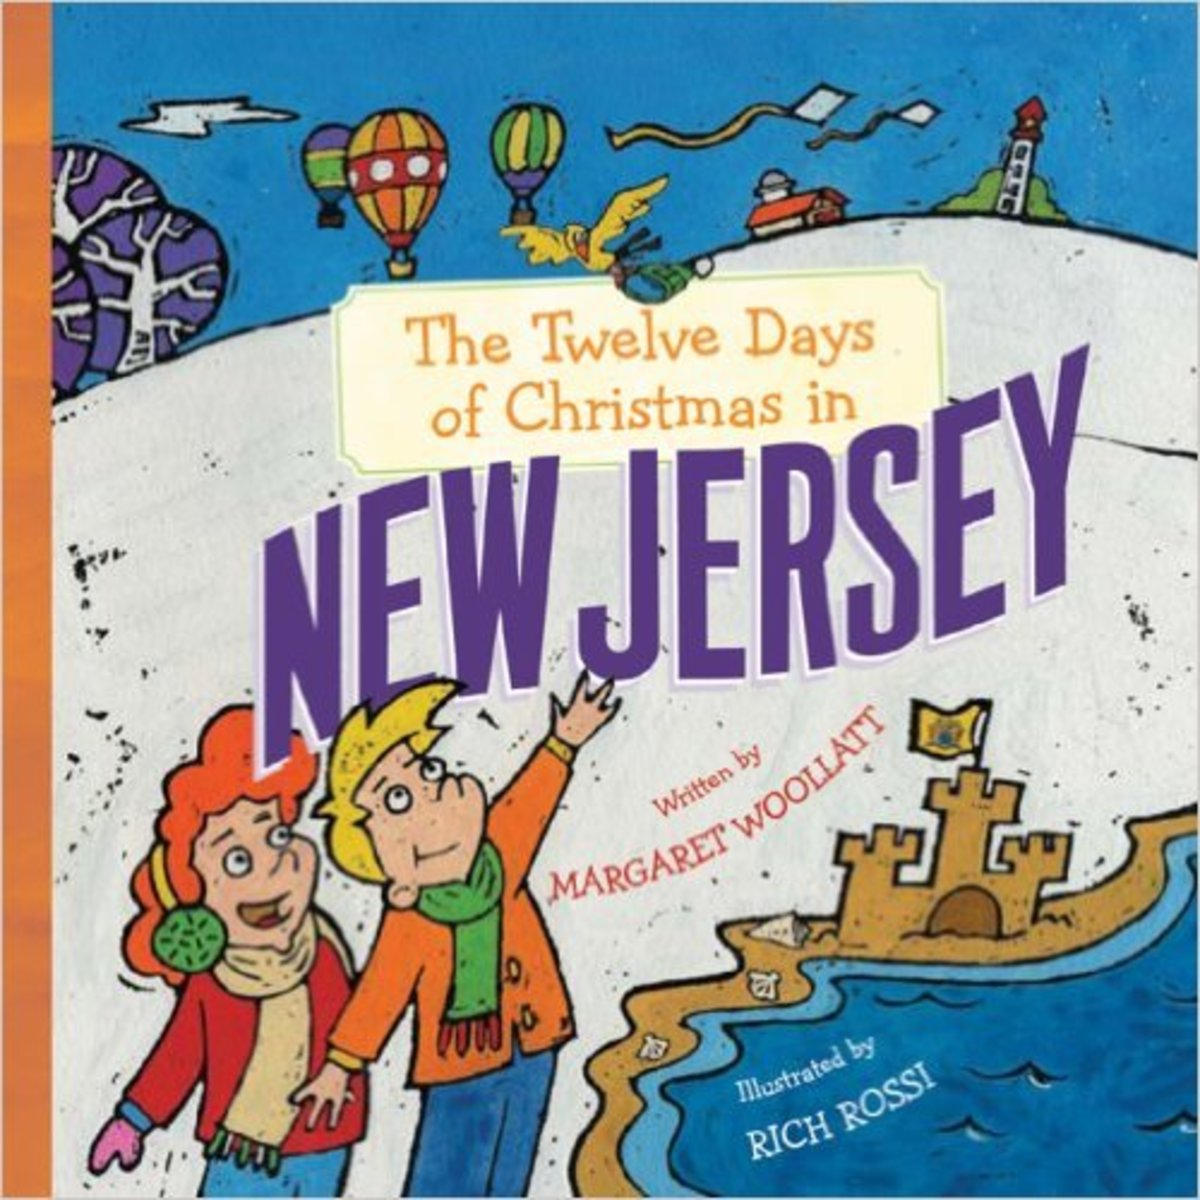 The Twelve Days of Christmas in New Jersey (The Twelve Days of Christmas in America) by Margaret Woollatt